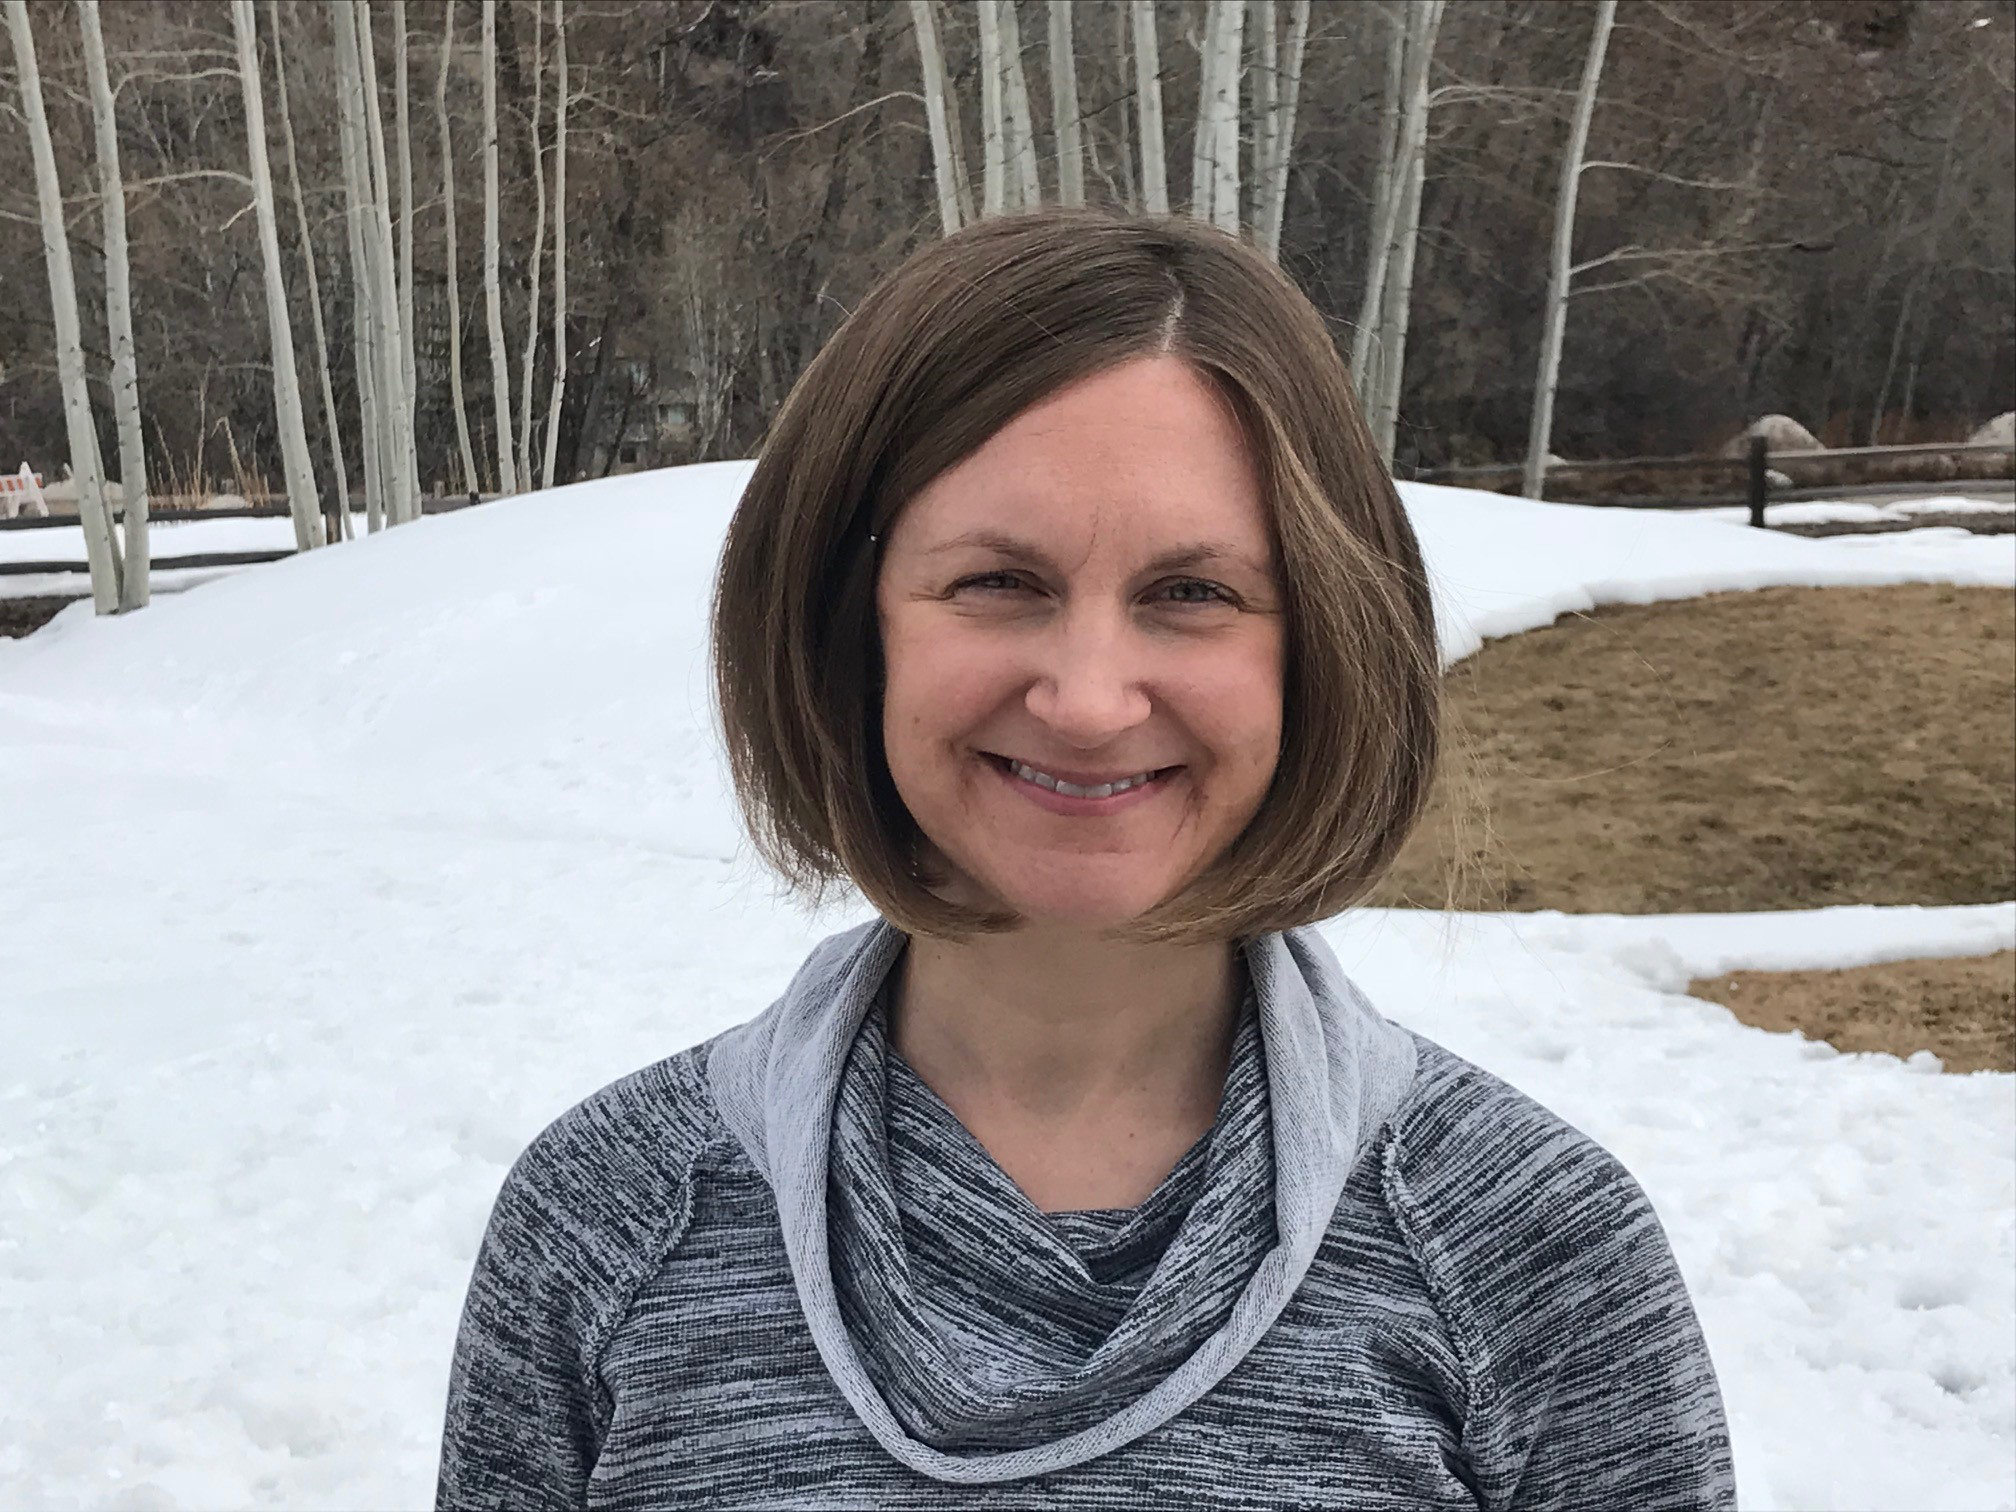 Marci Krivonen is a certified yoga instructor who began teaching at the Pitkin County Jail in 2014. She's interested in yoga as a tool for healing for people who have experienced trauma. Marci also works in digital marketing for The Aspen Institute. Prior to that she was a public media journalist who reported on the jail yoga program's start in Aspen! -